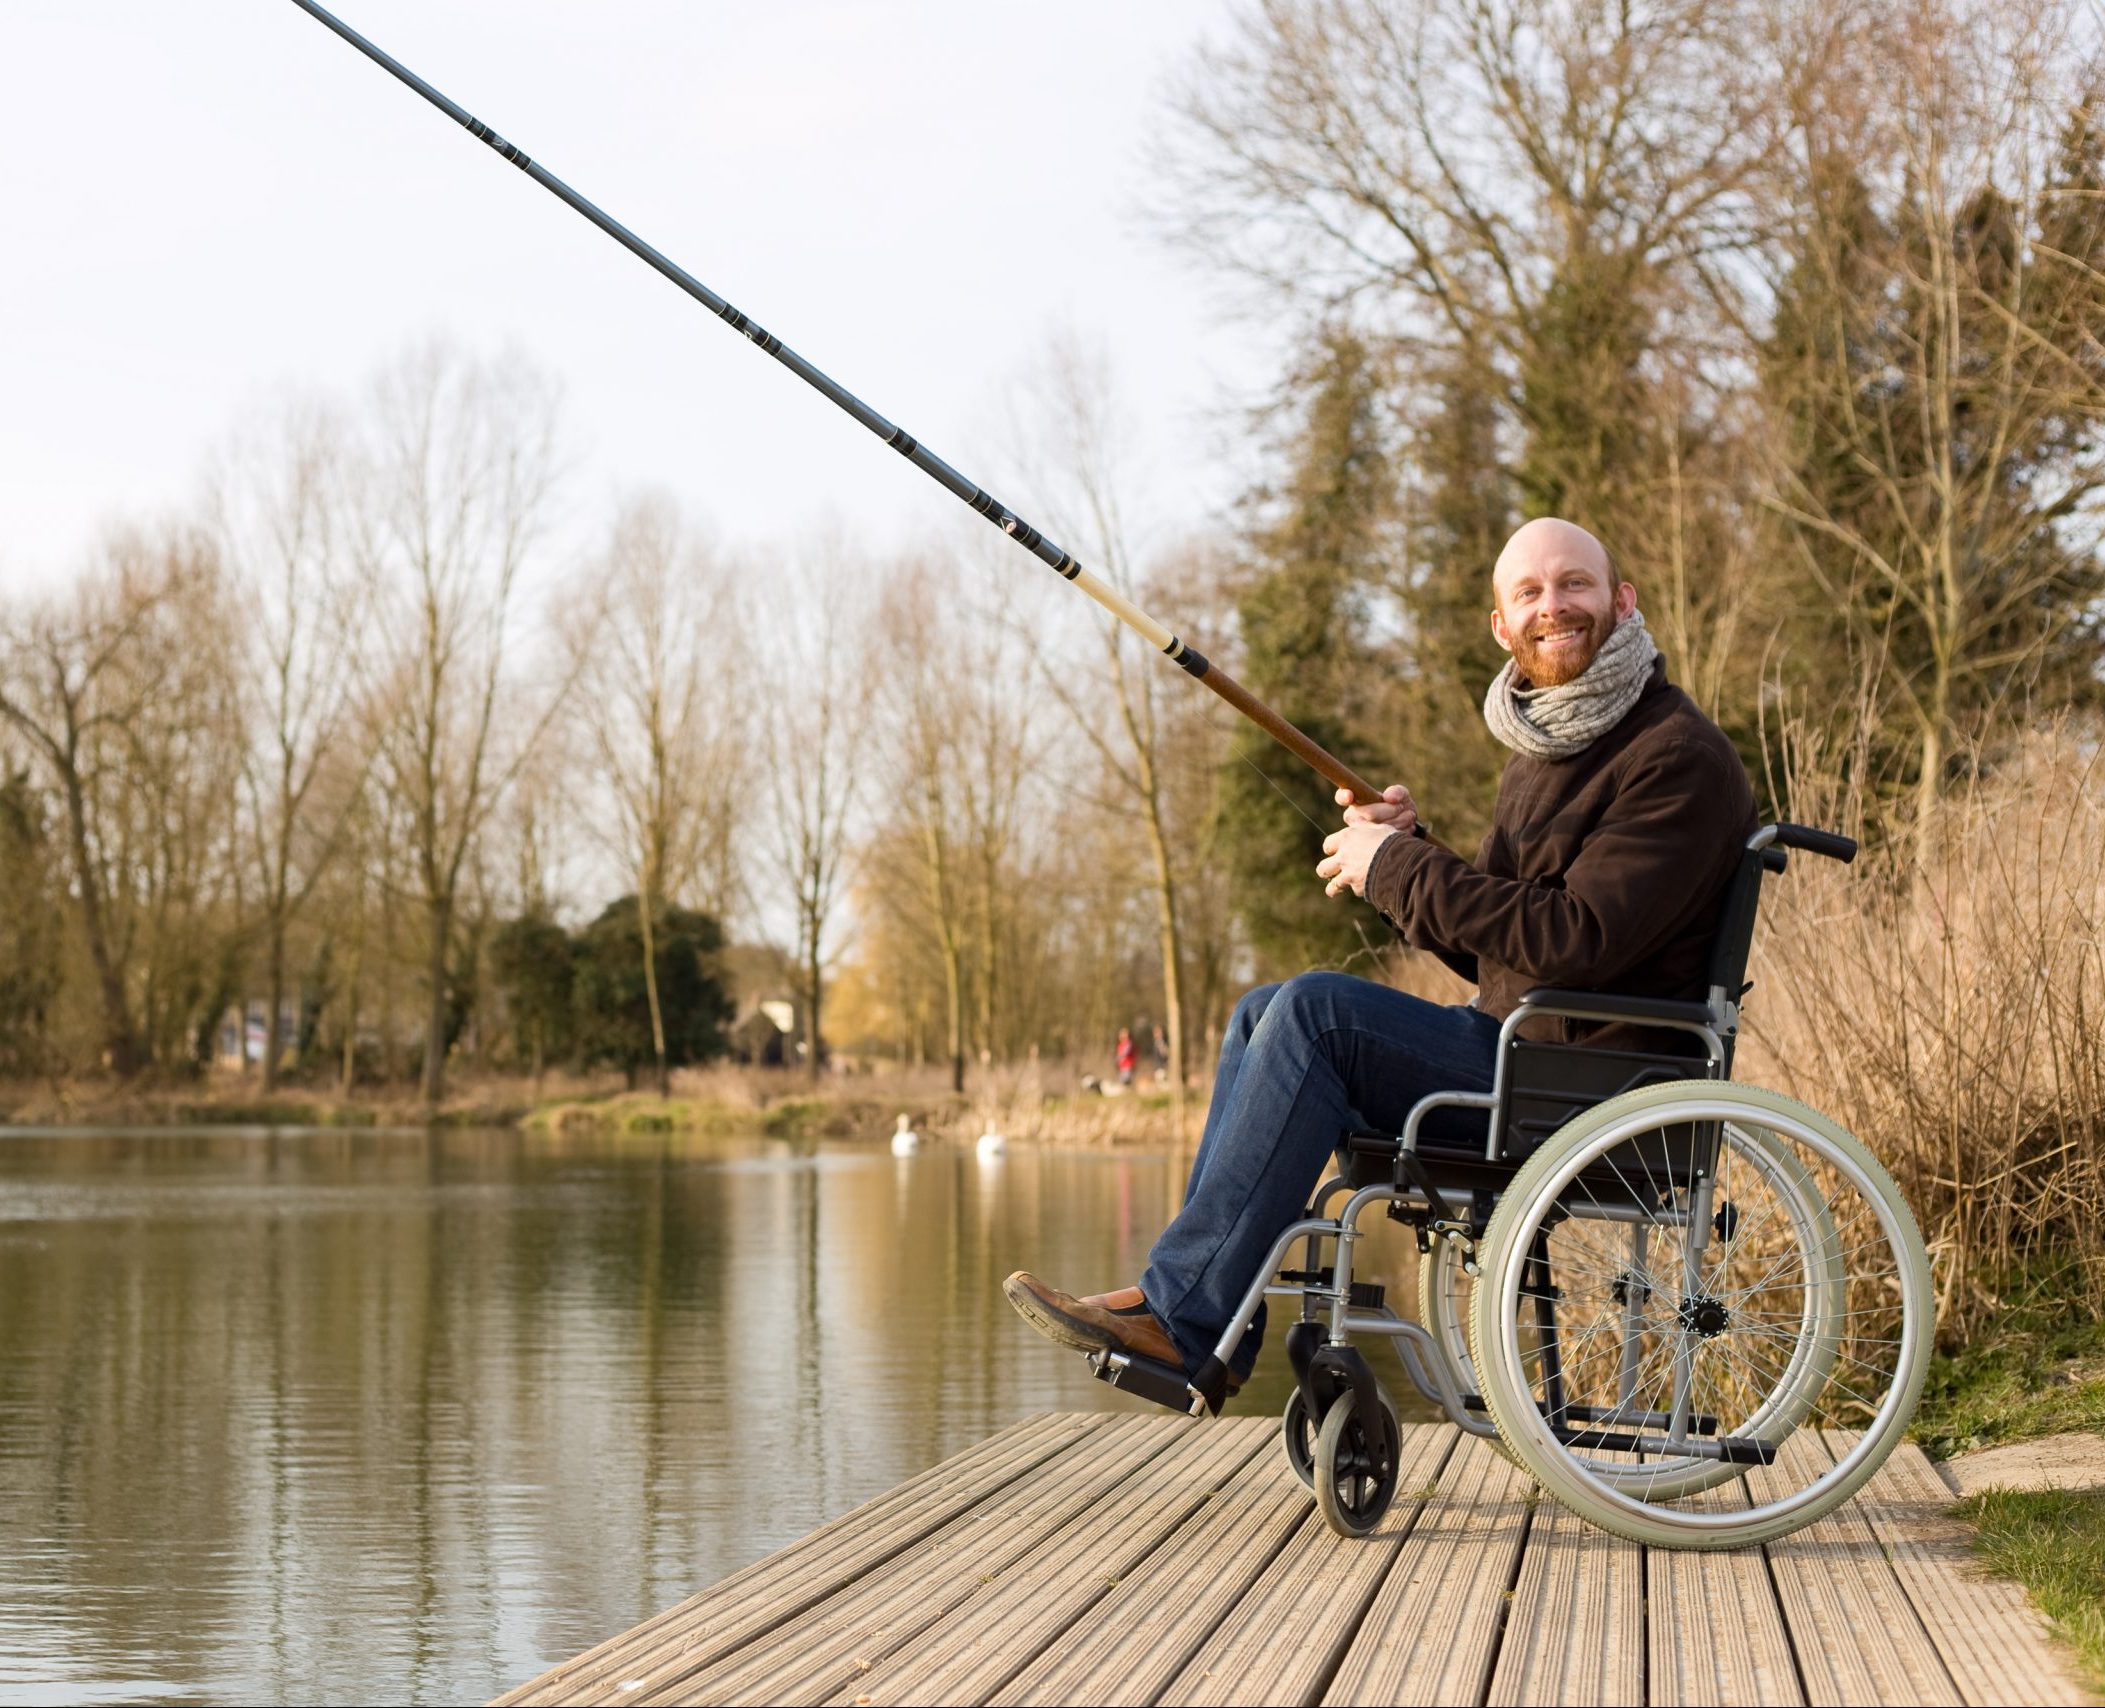 A man in a wheelchair enjoying fishing on the side of a lake